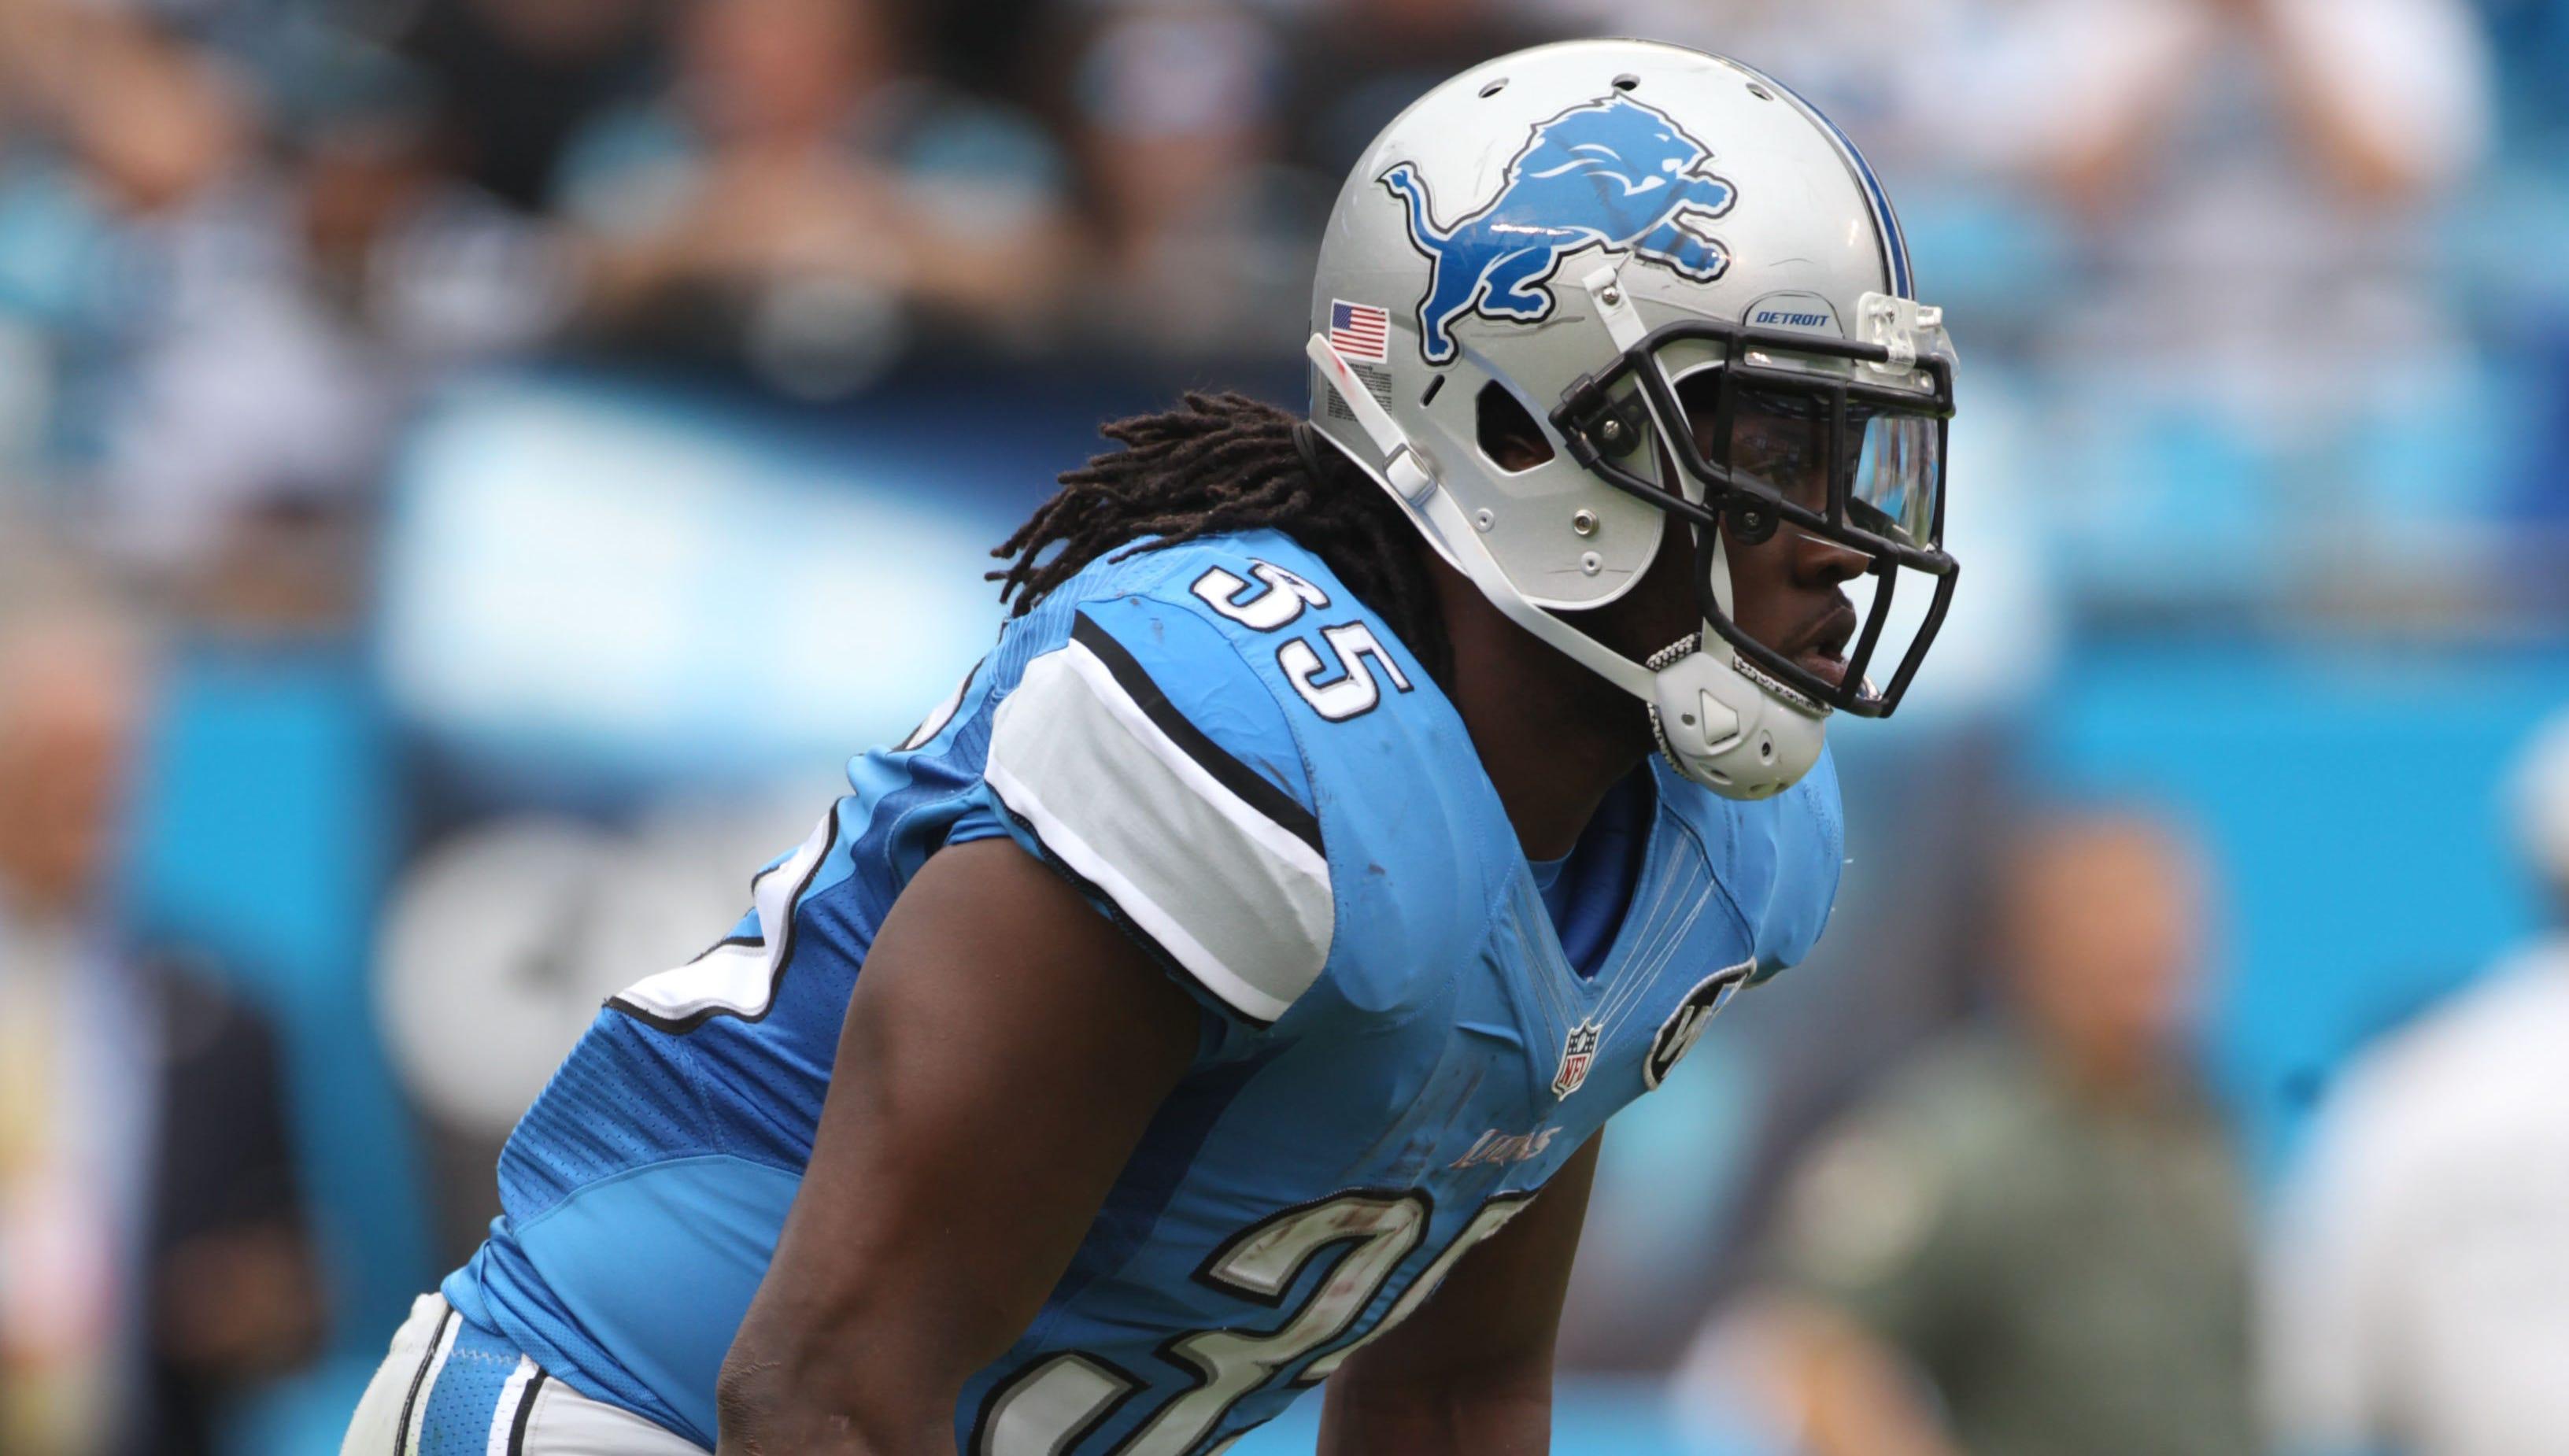 Detroit Lions' Joique Bell cleared for physical activity